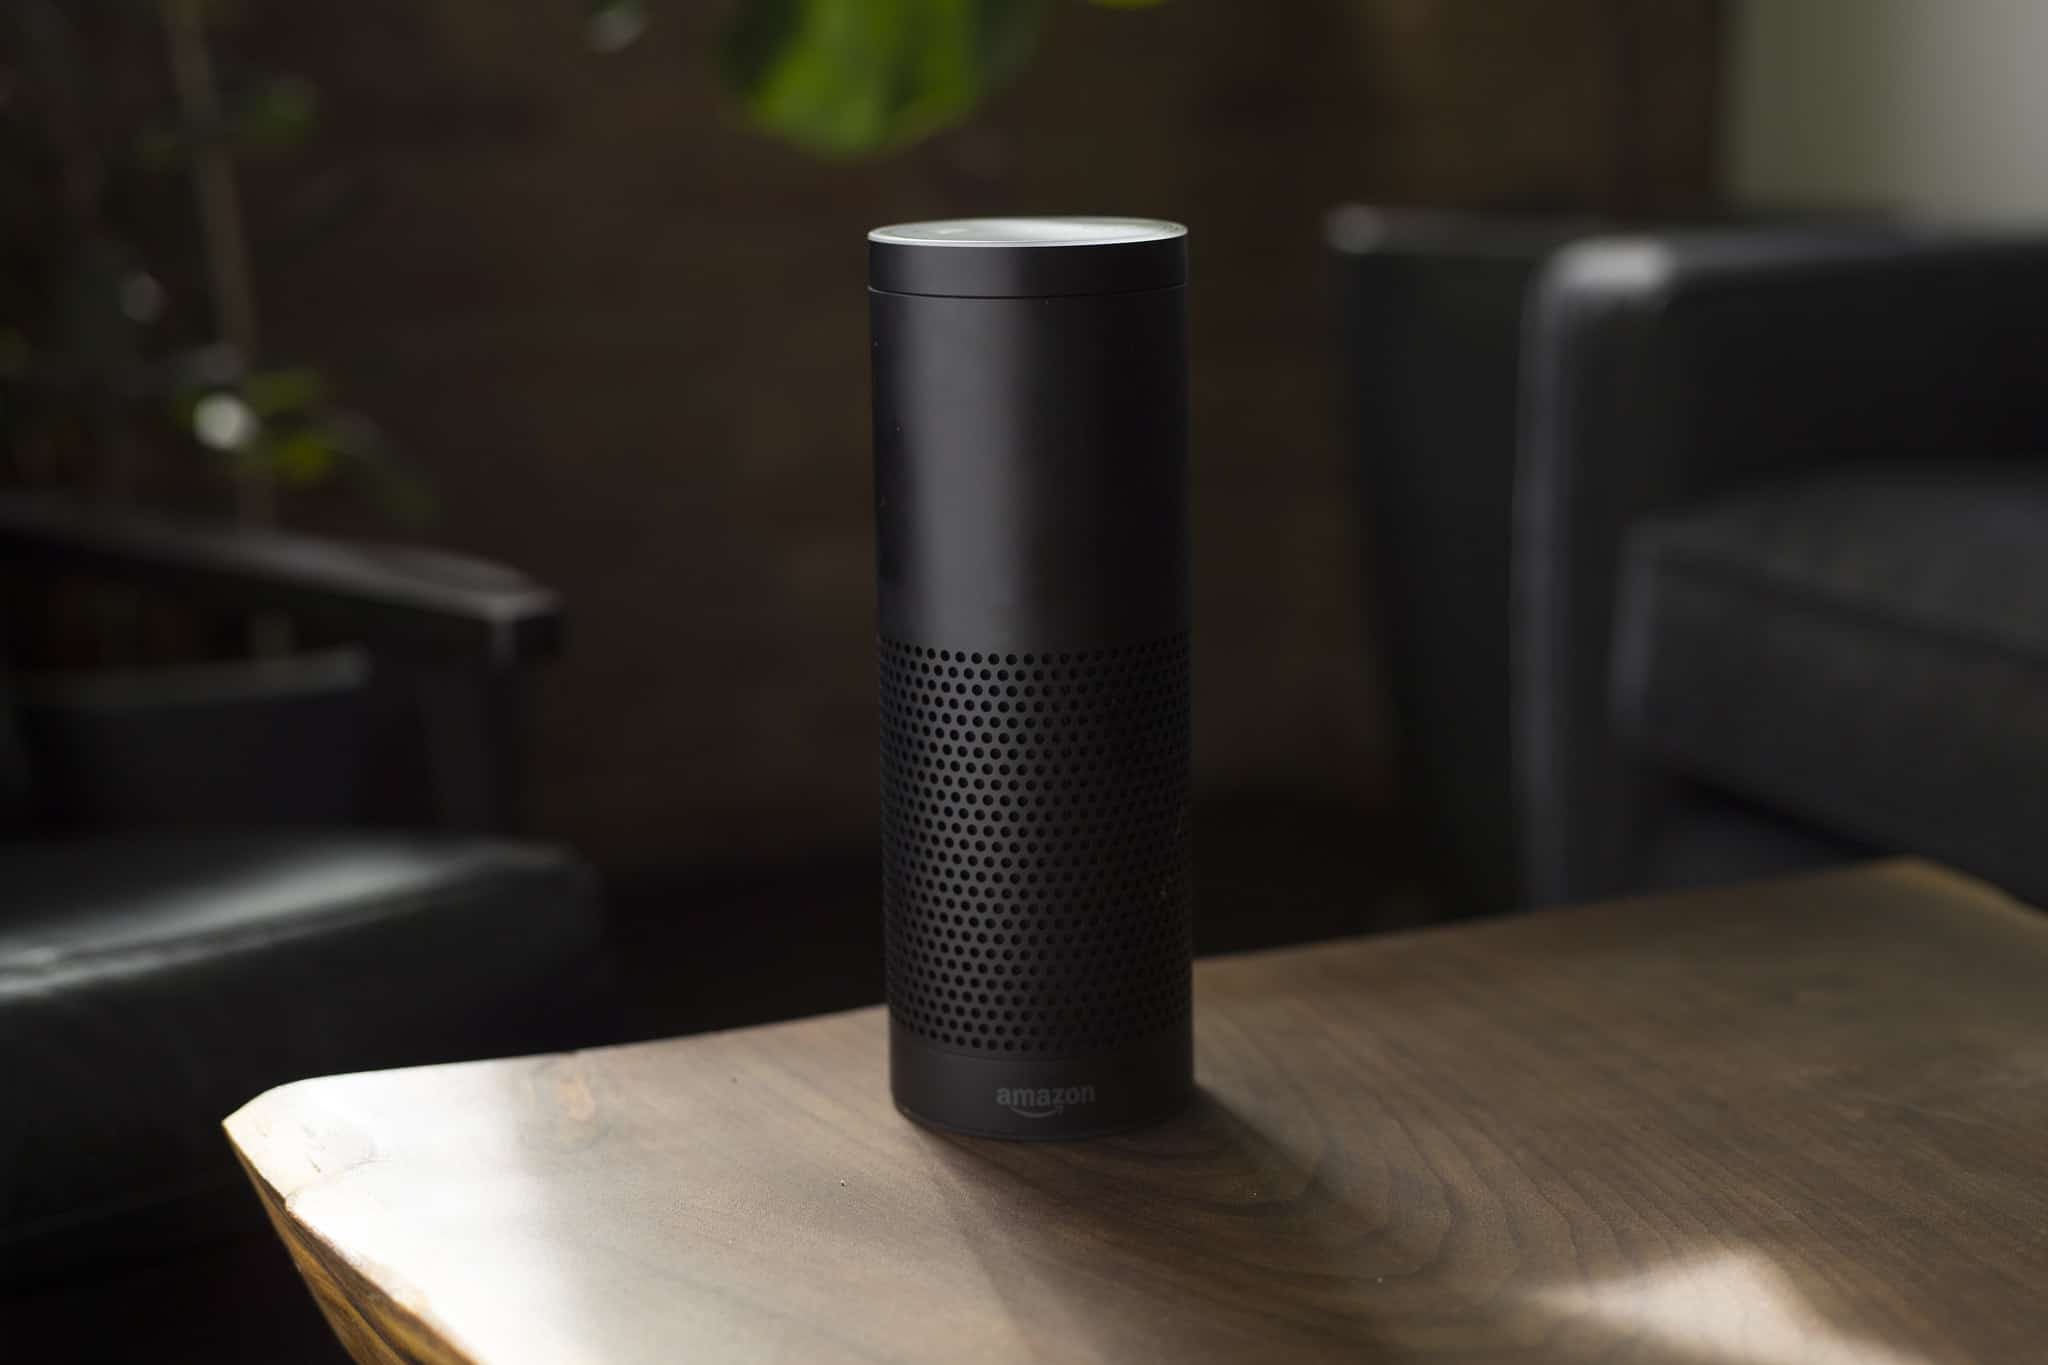 Does Arlo Work With Alexa